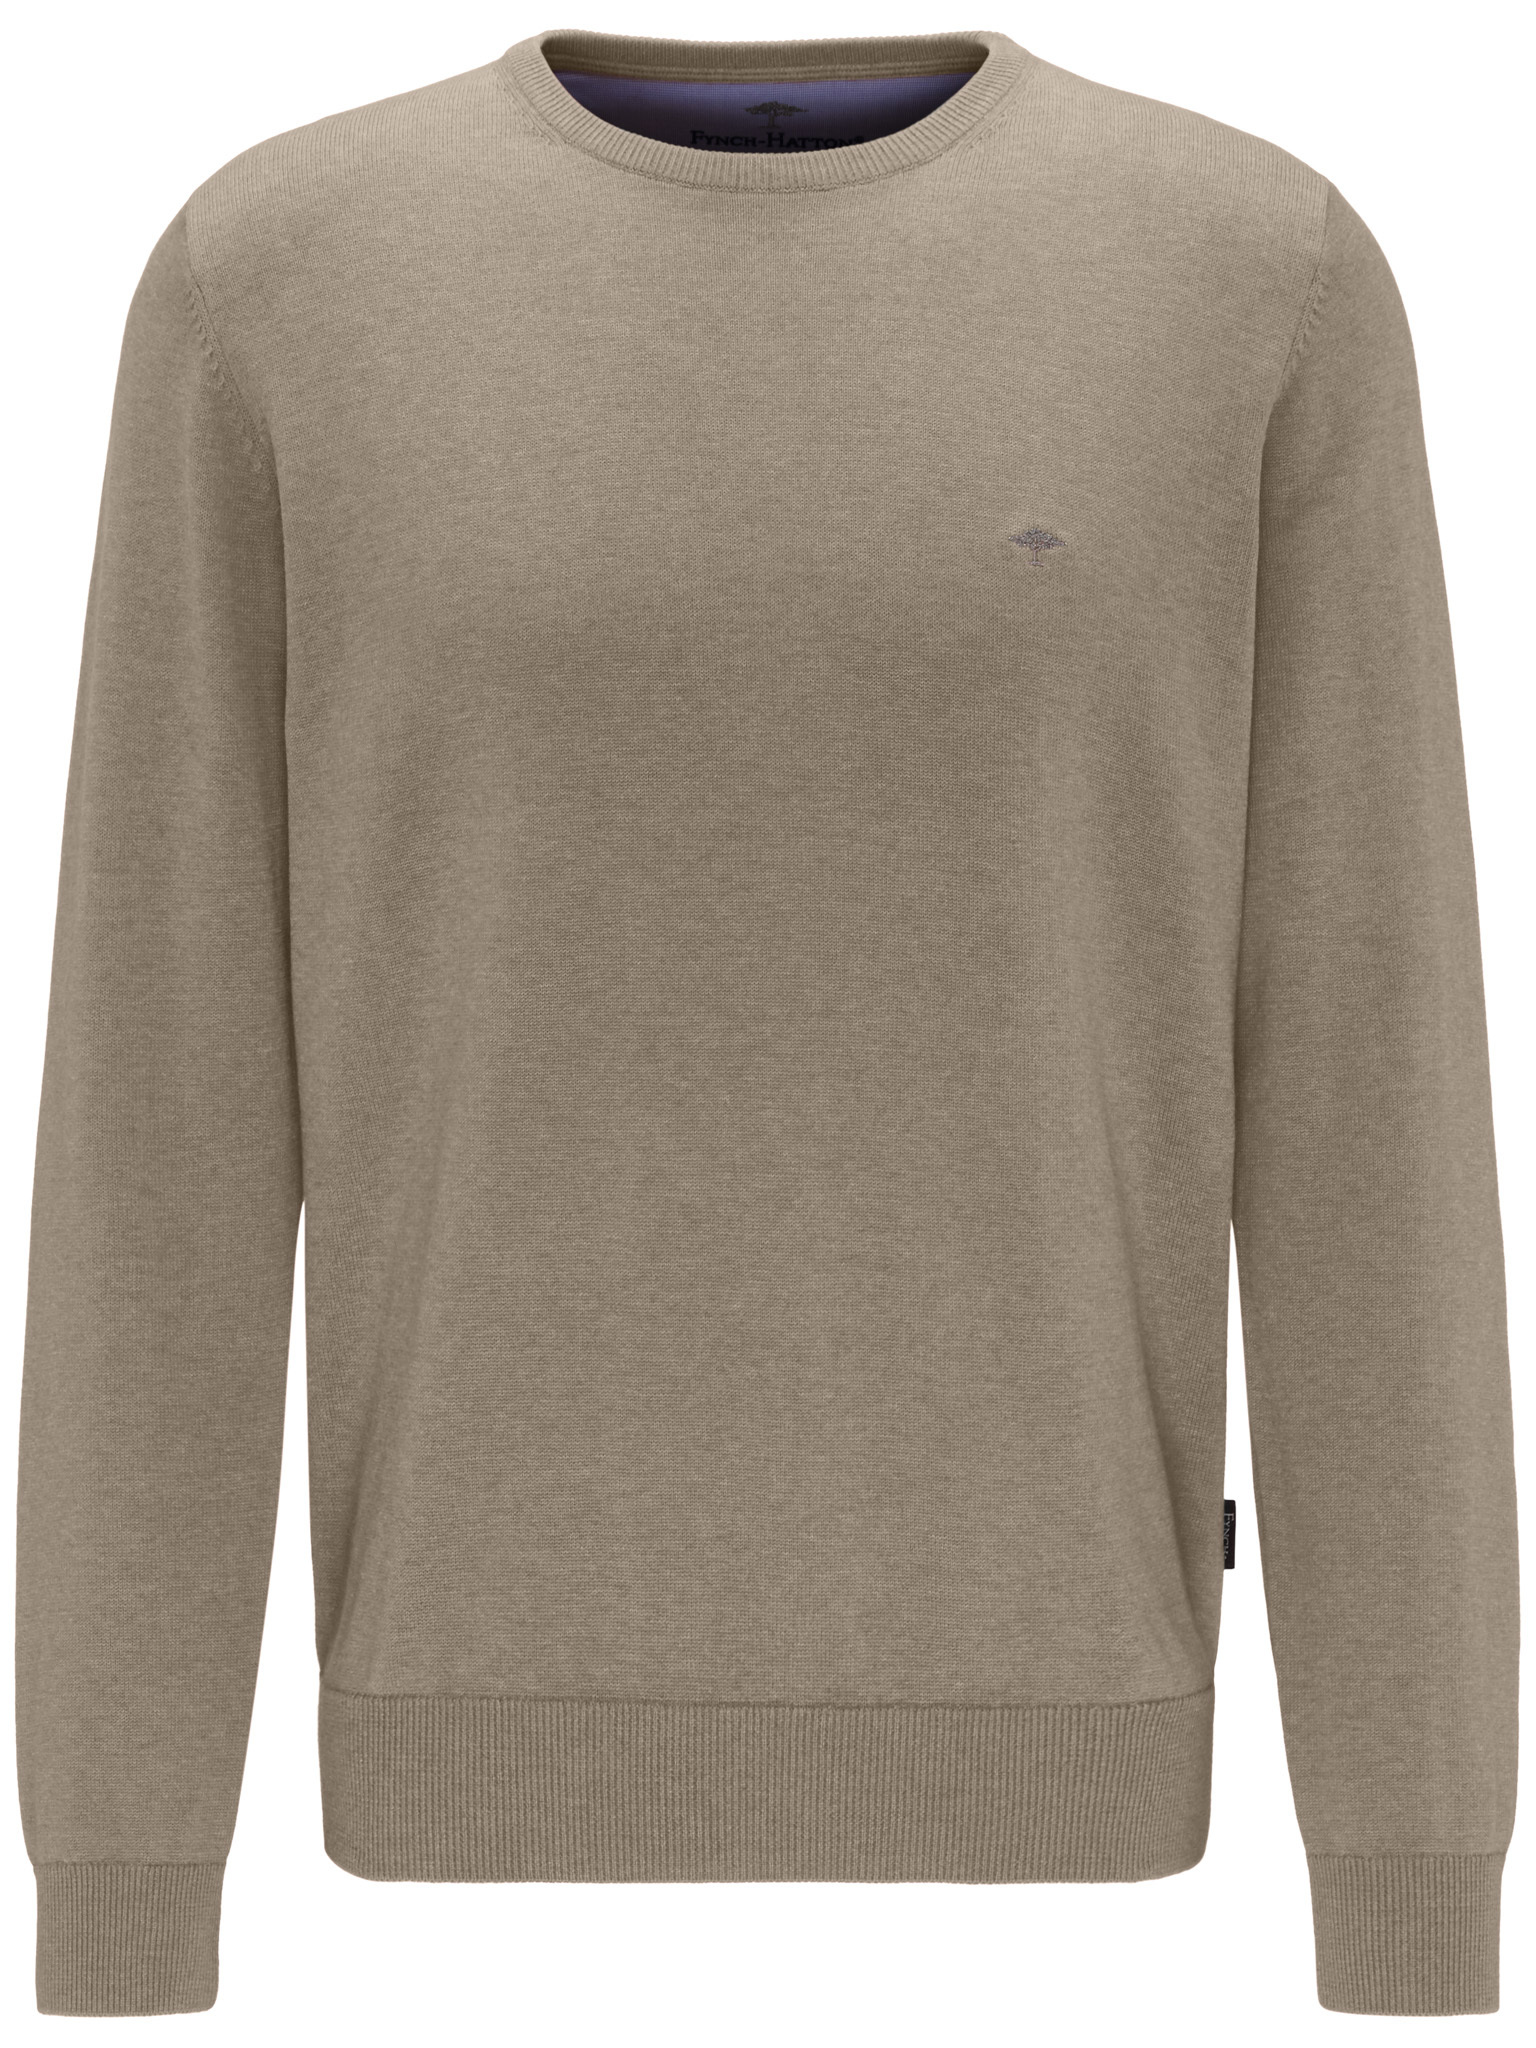 Fynch Hatton cotton crew neck sweater in taupe